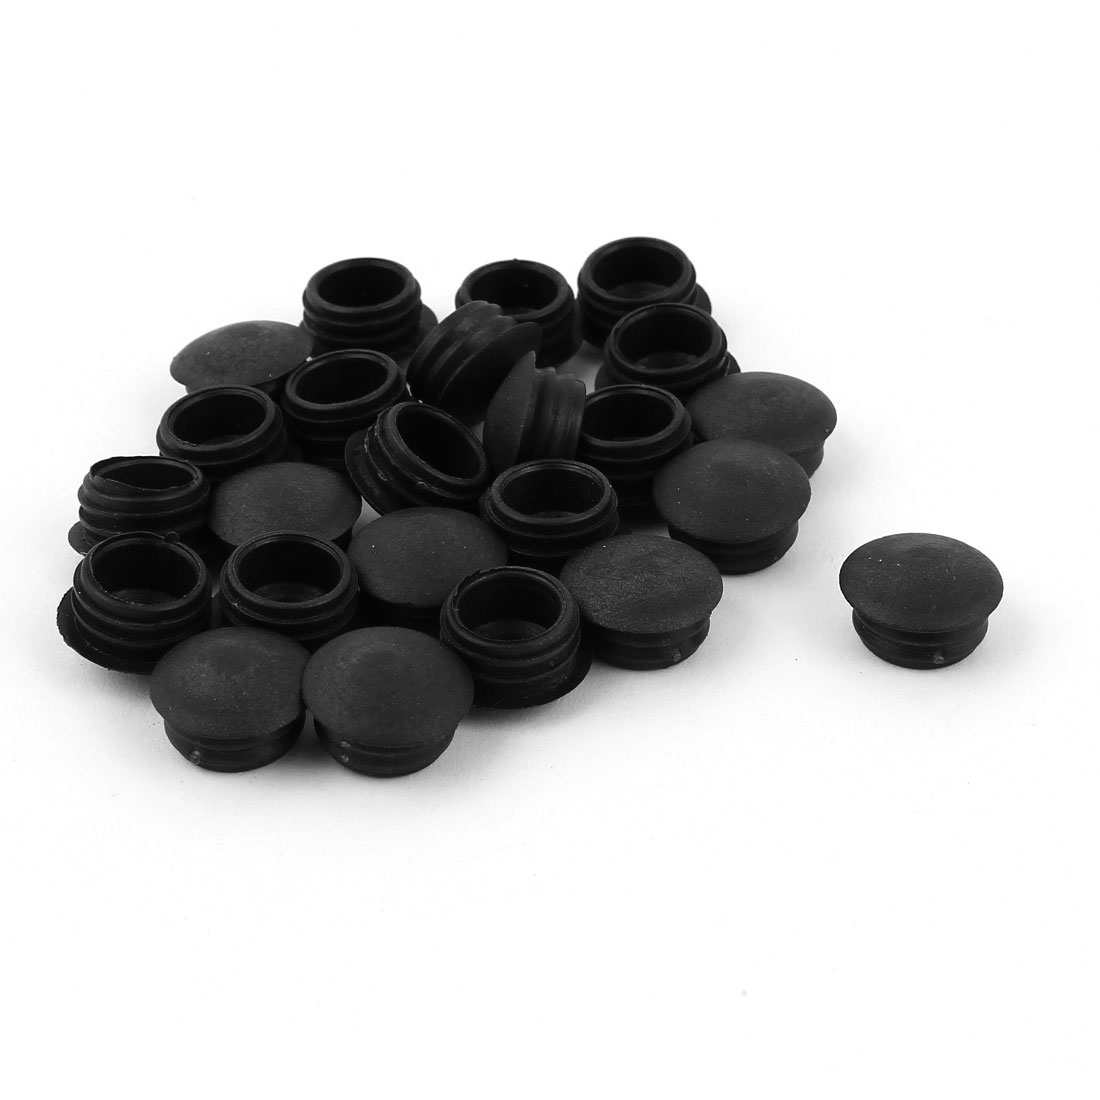 Blanking End Caps 13mm Dia Plastic Round Tubing Tube Inserts 24 Pcs